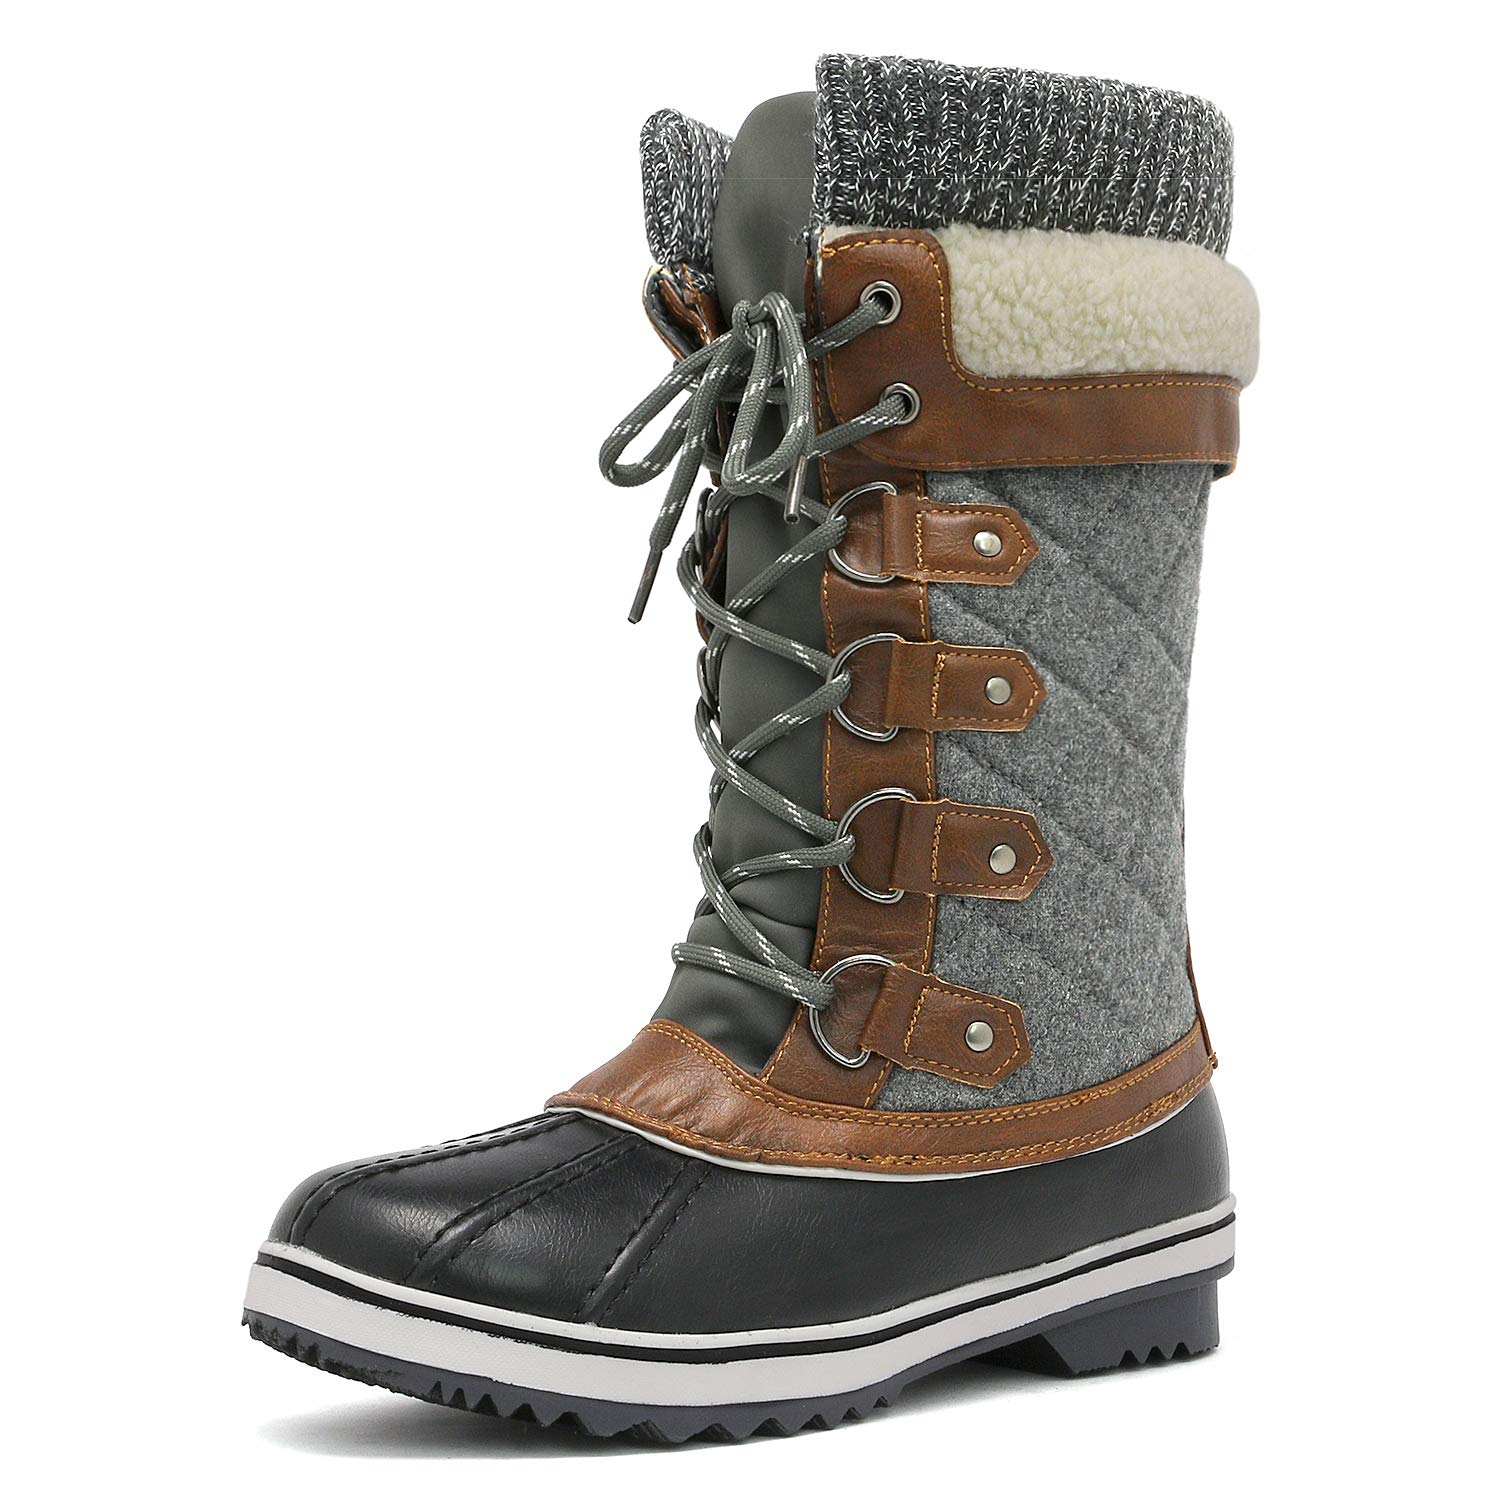 DREAM PAIRS Women's Monte_02 Black Grey Mid Calf Winter Snow Boots Size 9 M US by DREAM PAIRS